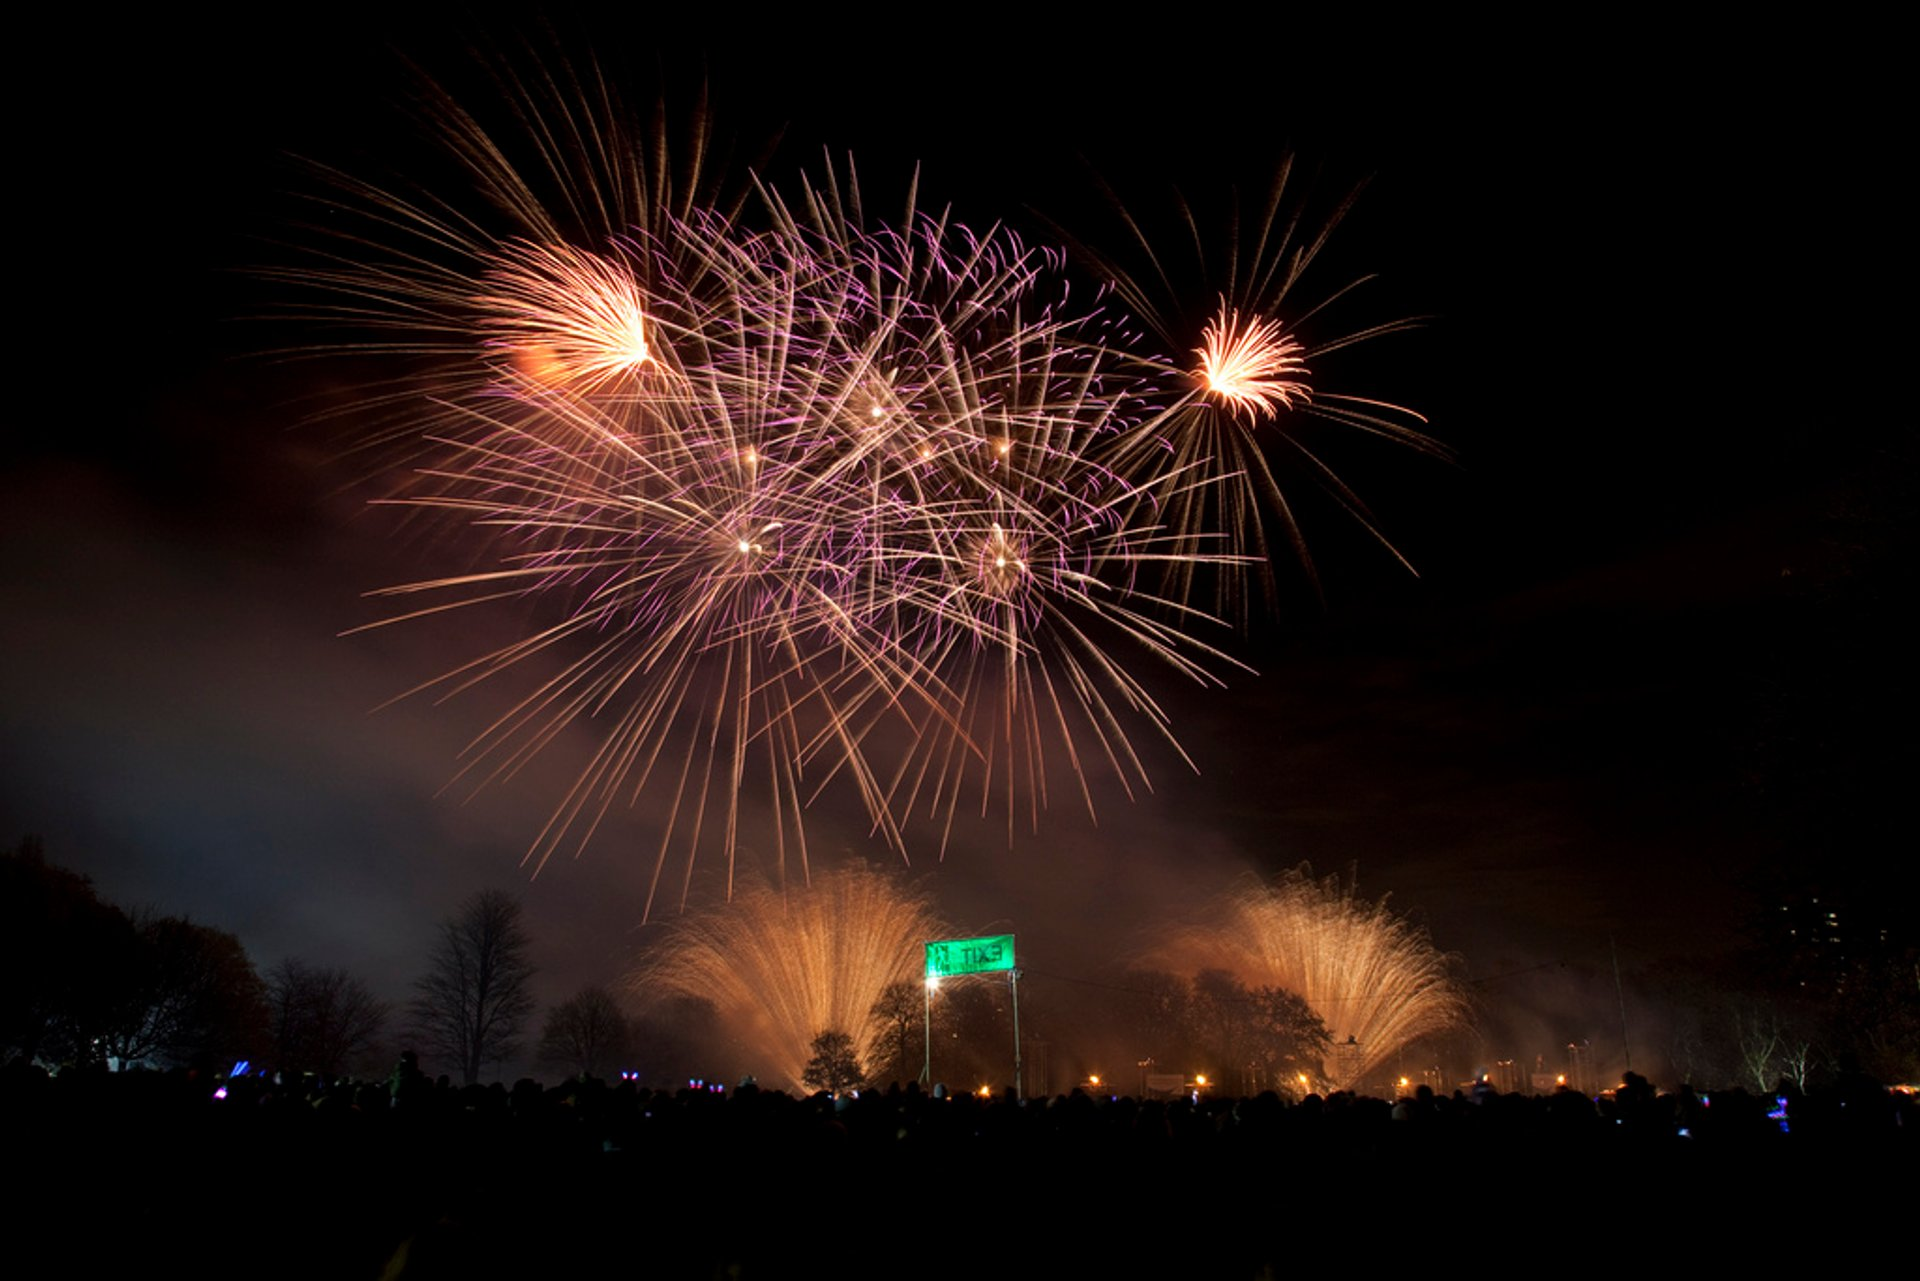 Tower Hamlets Fireworks at Victoria Park in London 2020 - Best Time